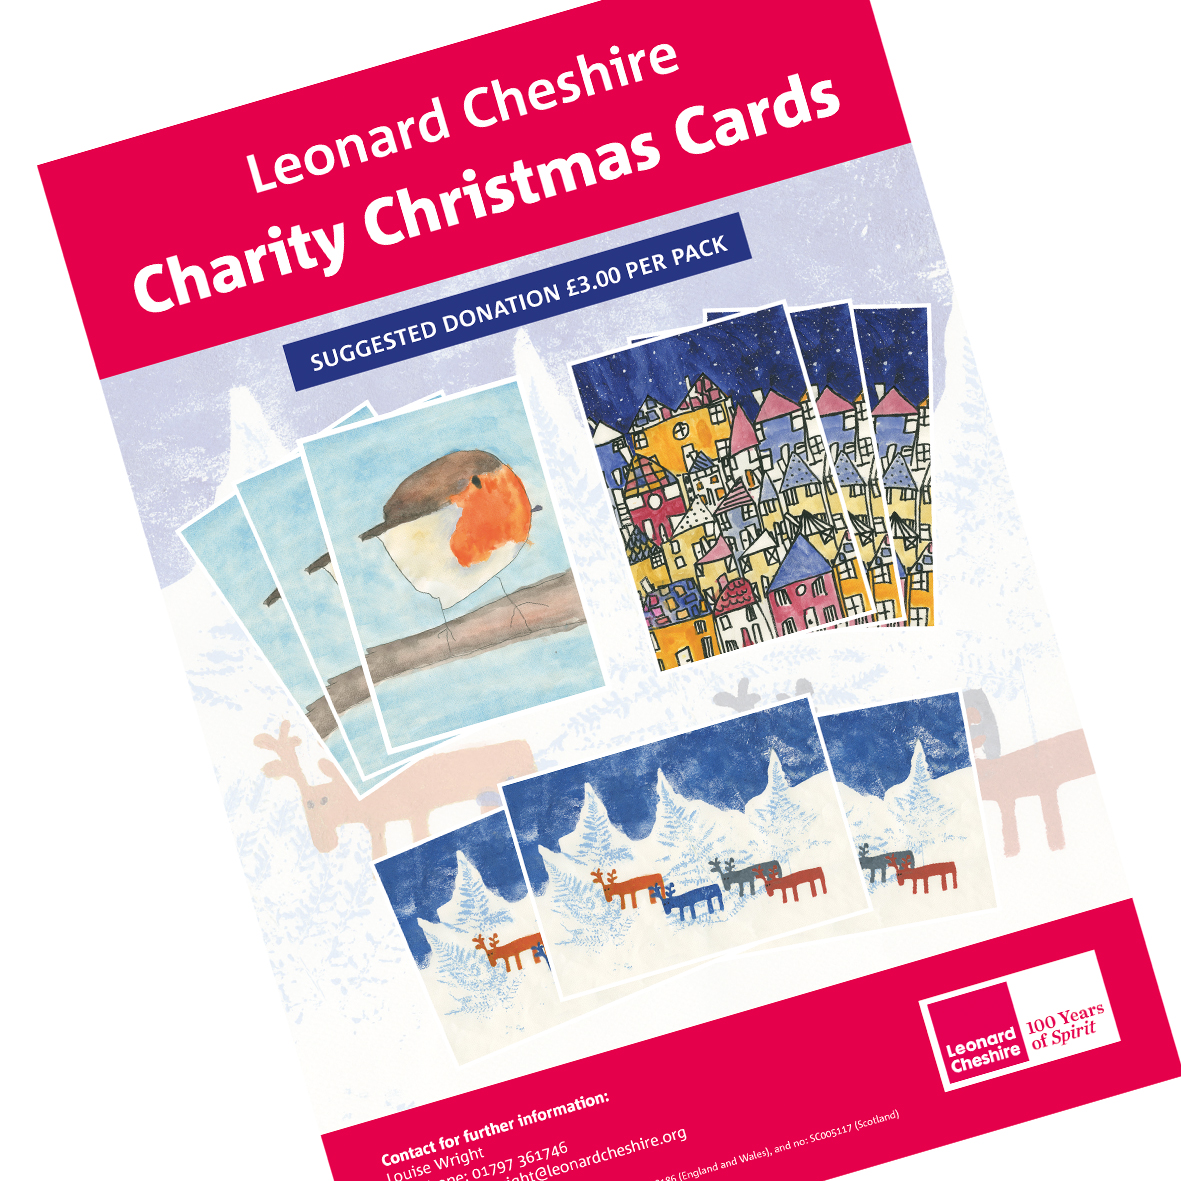 Leonard Cheshire Christmas Cards